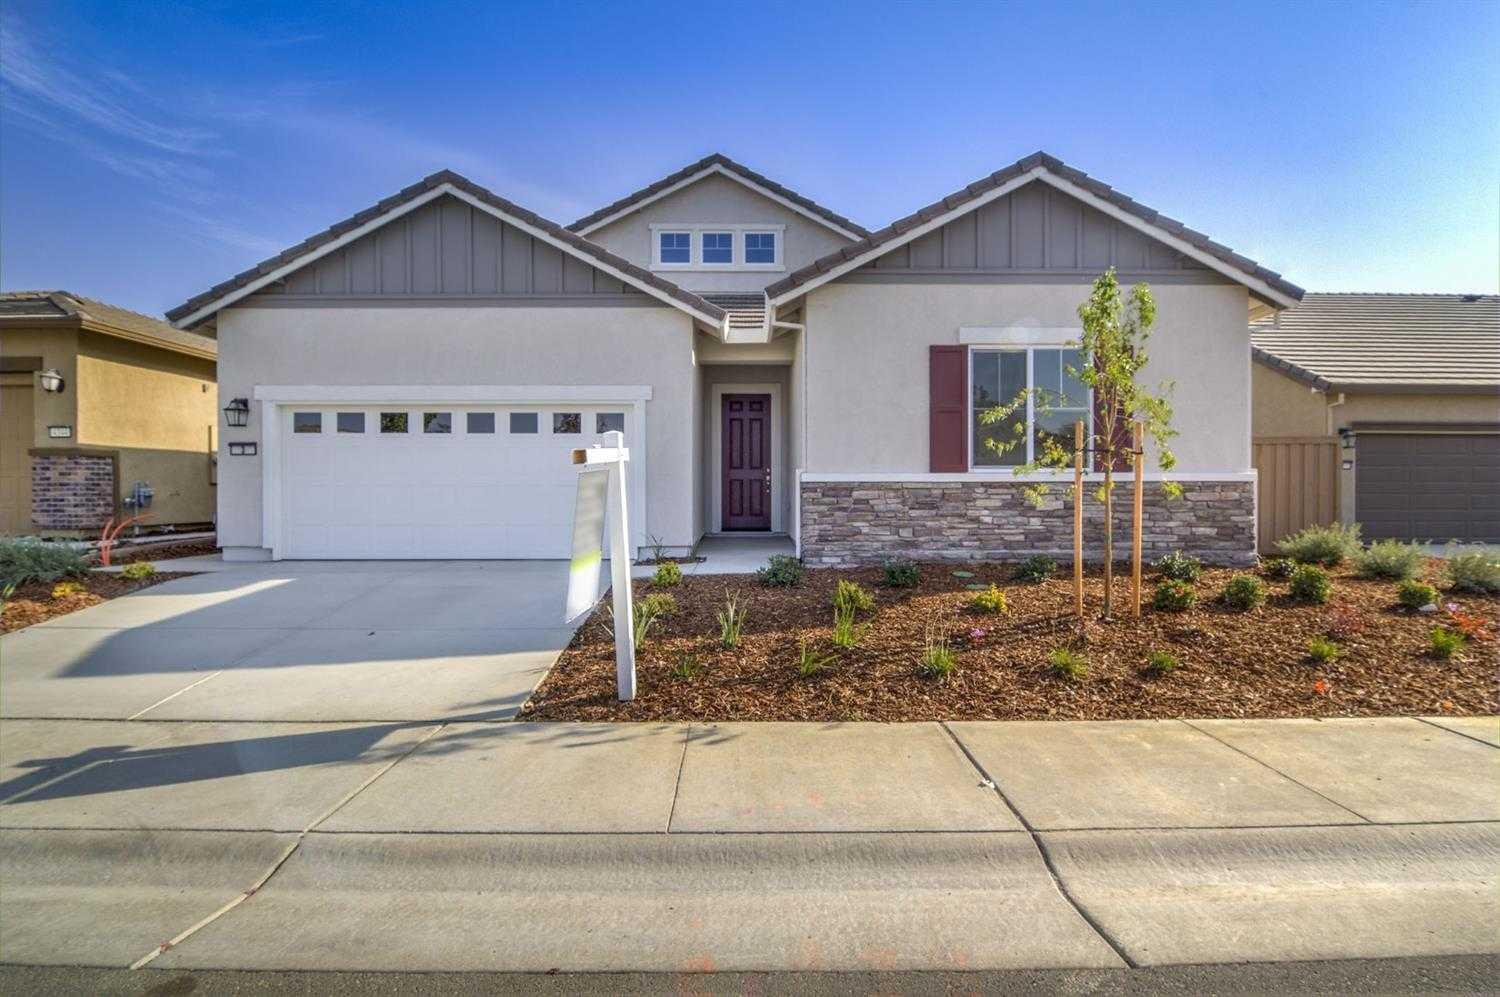 $520,000 - 3Br/3Ba -  for Sale in Four Seasons, Sacramento